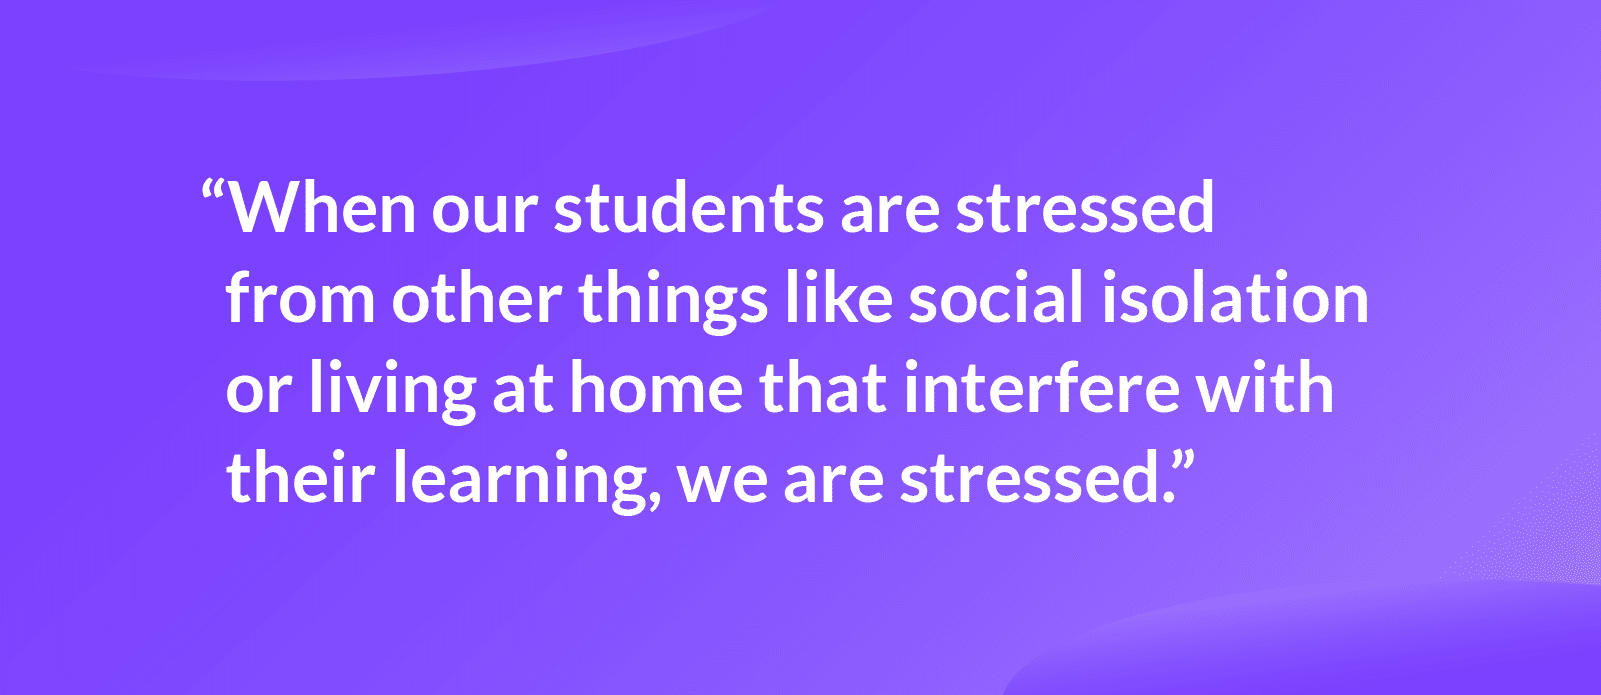 """Quote that reads: """"when our students are stressed from other things like social isolation or living at home that interfere with their learning, we are stressed."""""""